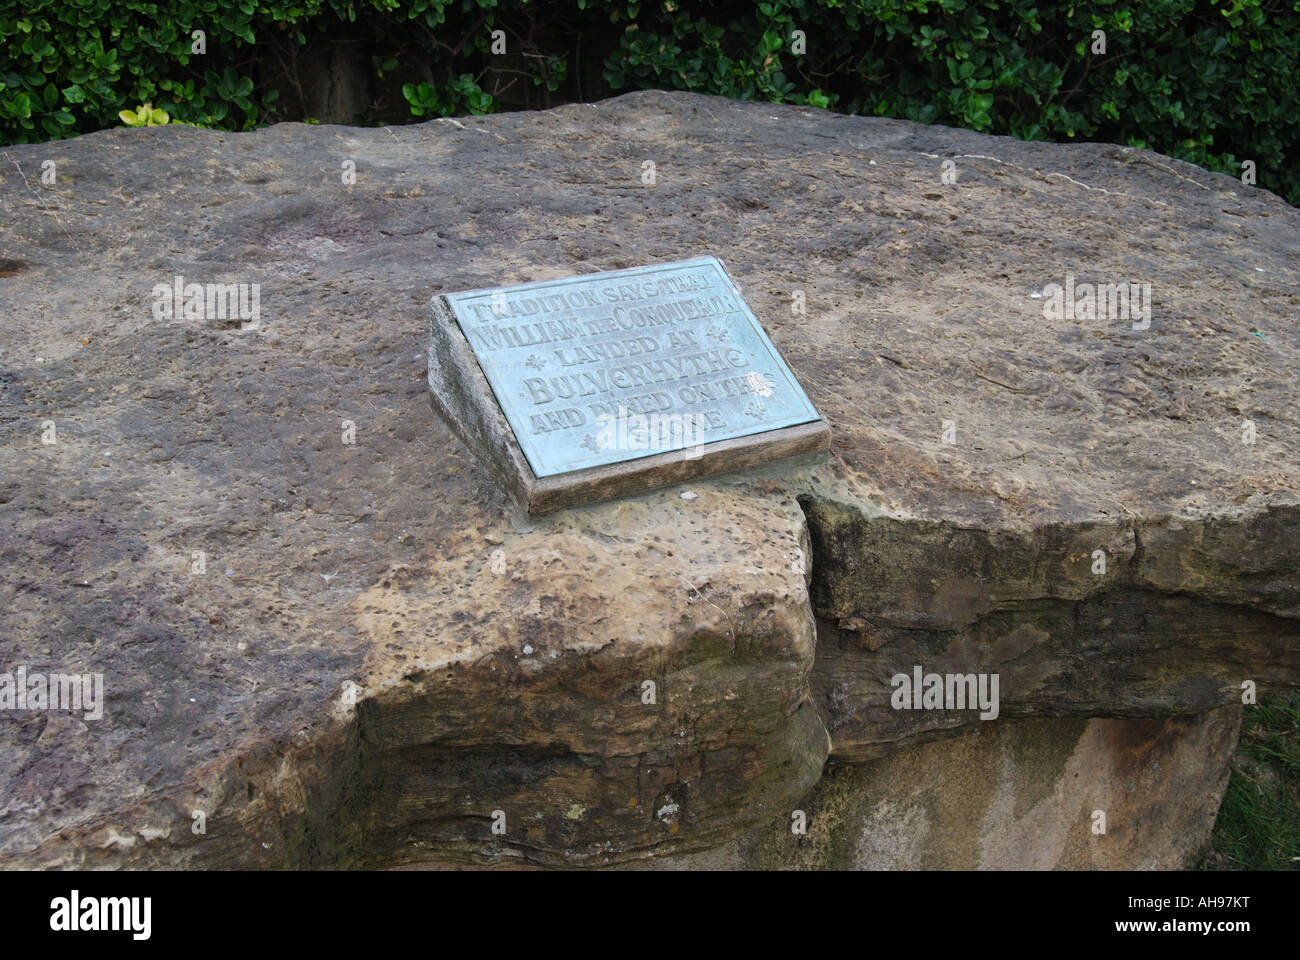 Stone table on which William the Conqueror dined, Bulverhythe, Hastings, East Sussex, England, United Kingdom Stock Photo